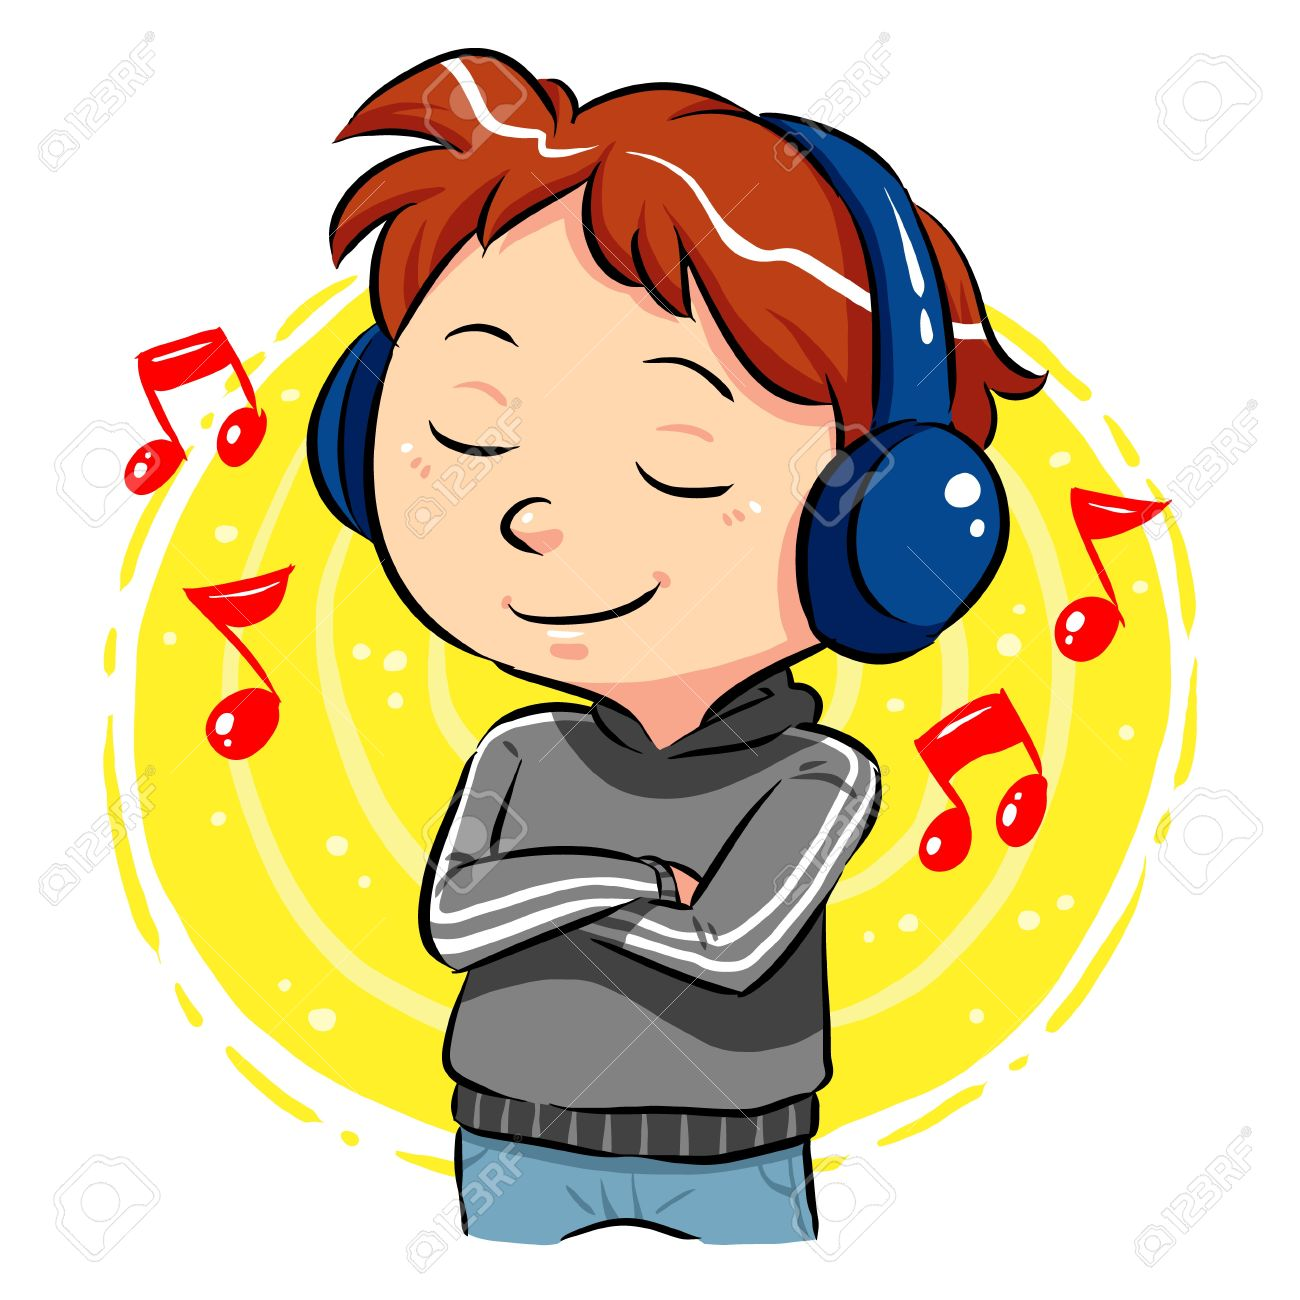 Listening To Music  A boy listening to music with headphones on his head Stock Vector - 20360741